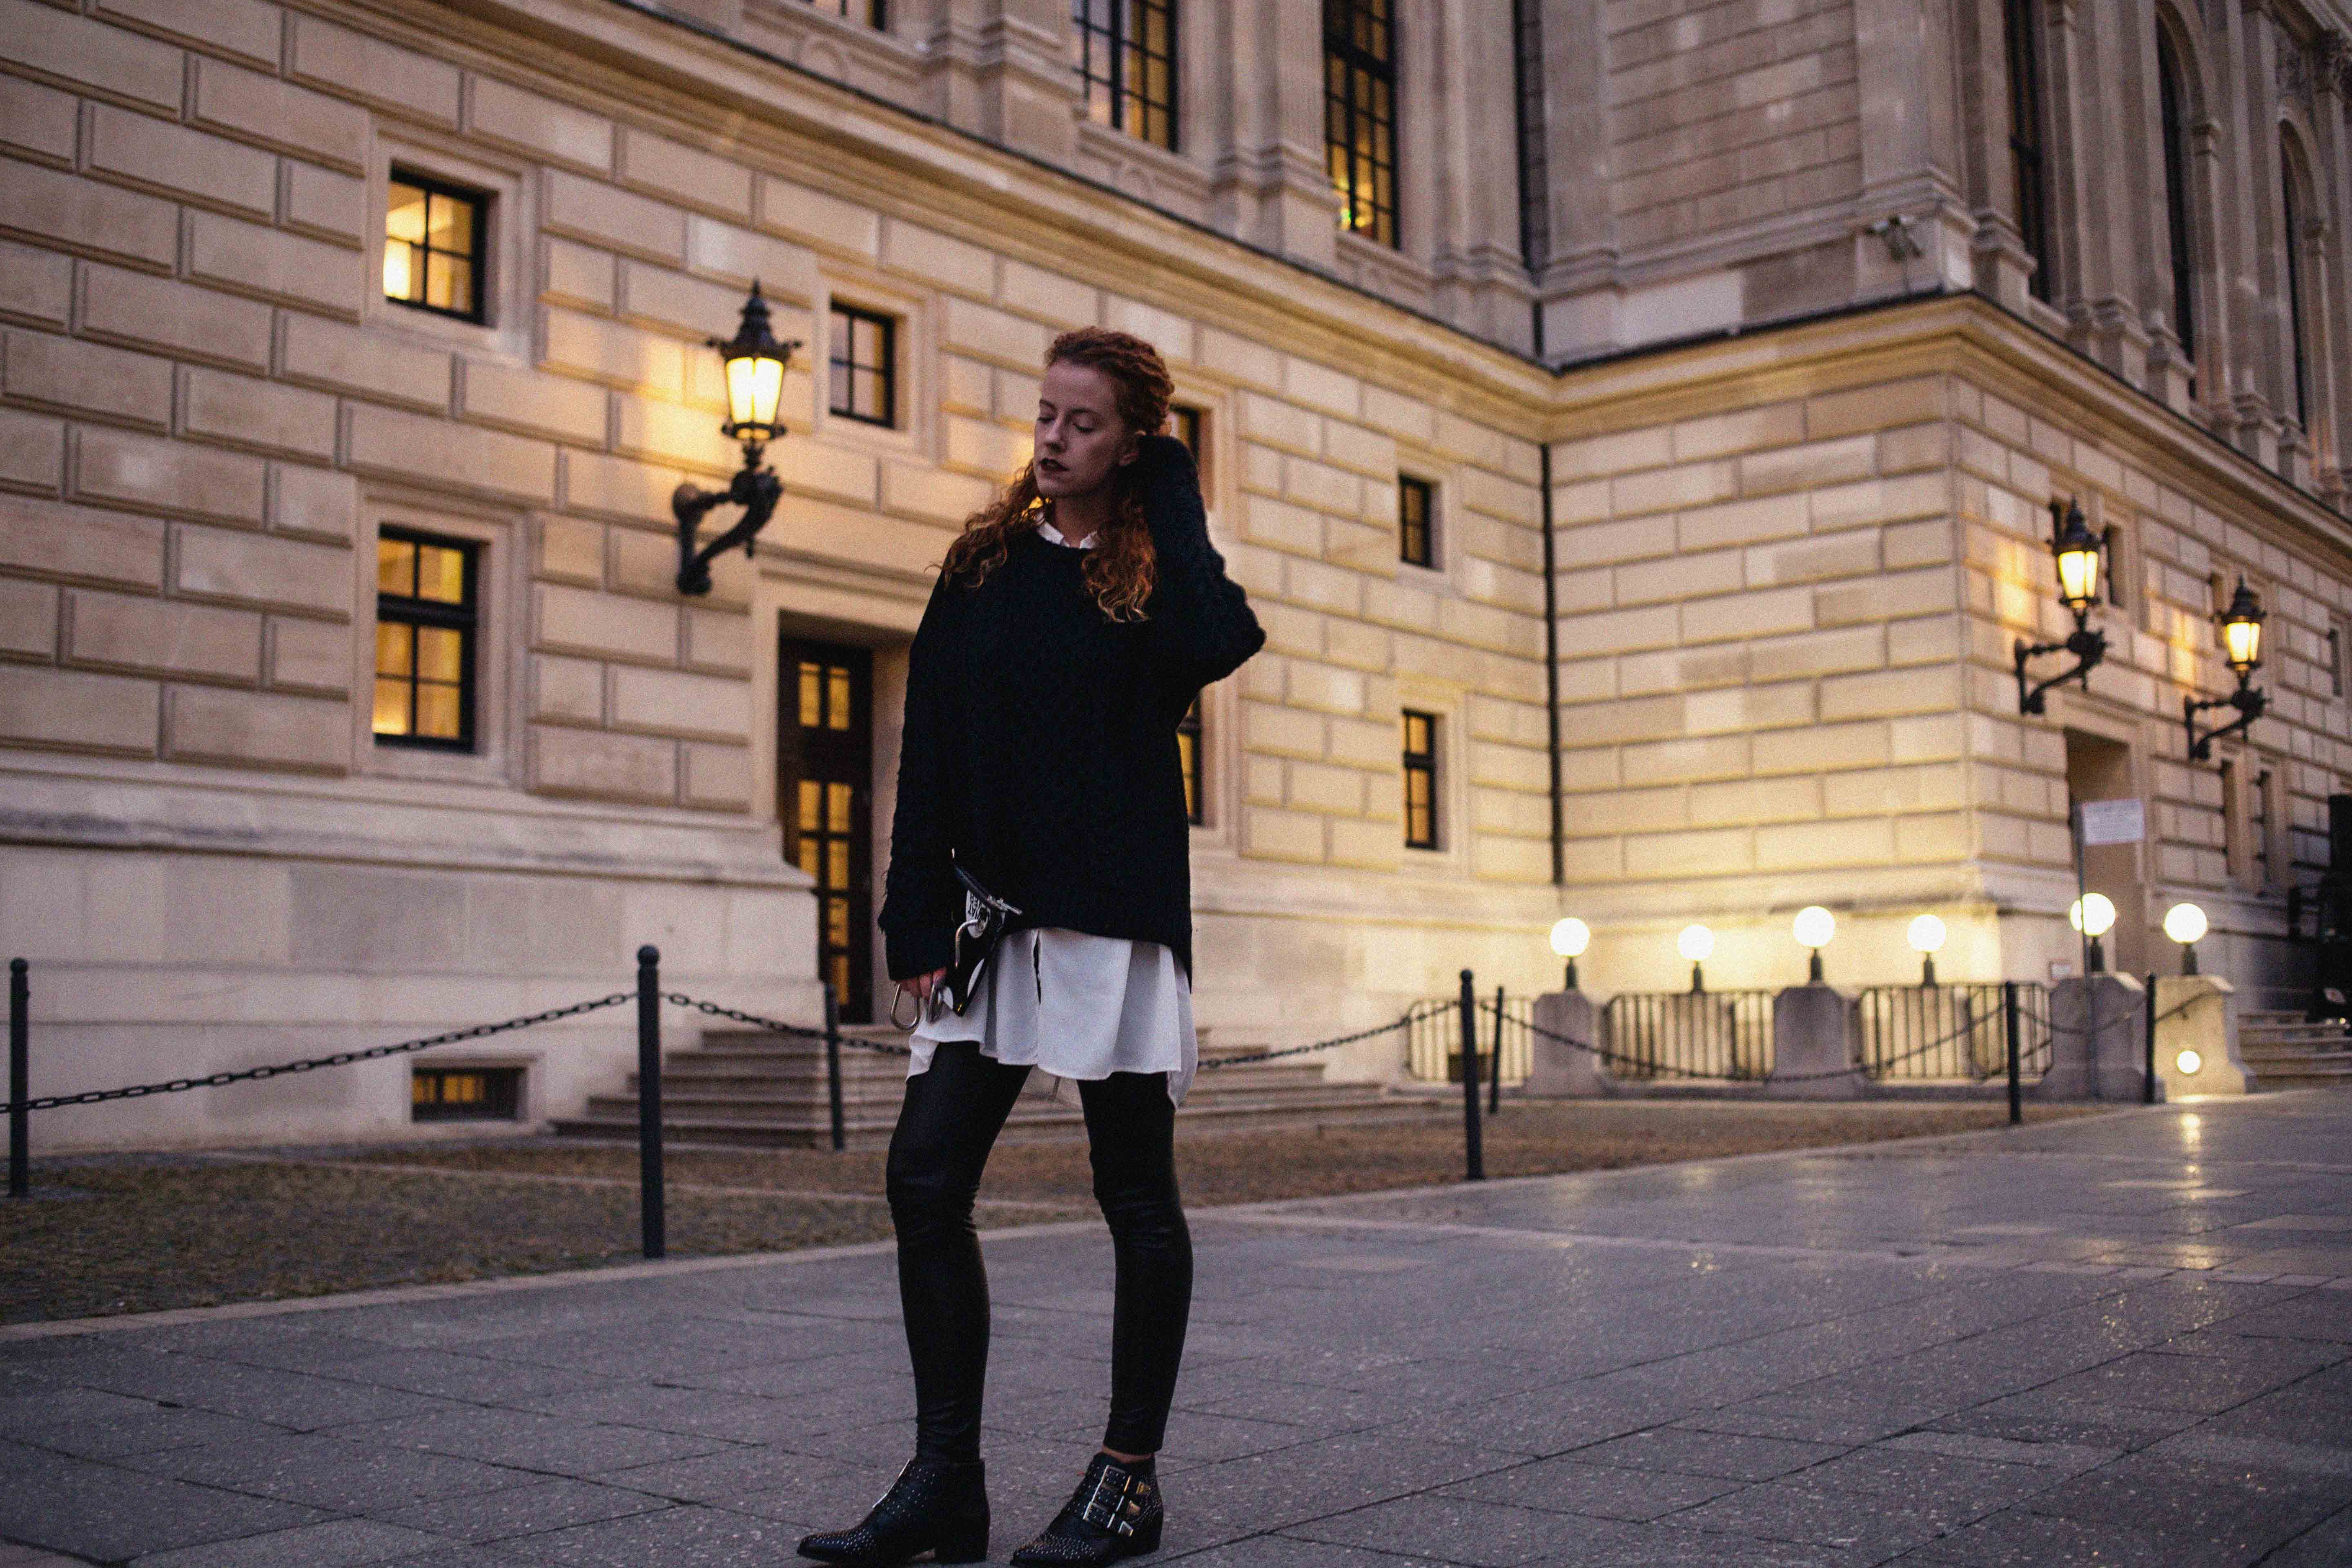 outfit blogger frankfurt ootd lookbook look thecurledgirl the curled girl autumn inspiration herbst sacha stiefeletten boots pullover layering 5preview curls ffm mode fashion frankfurt